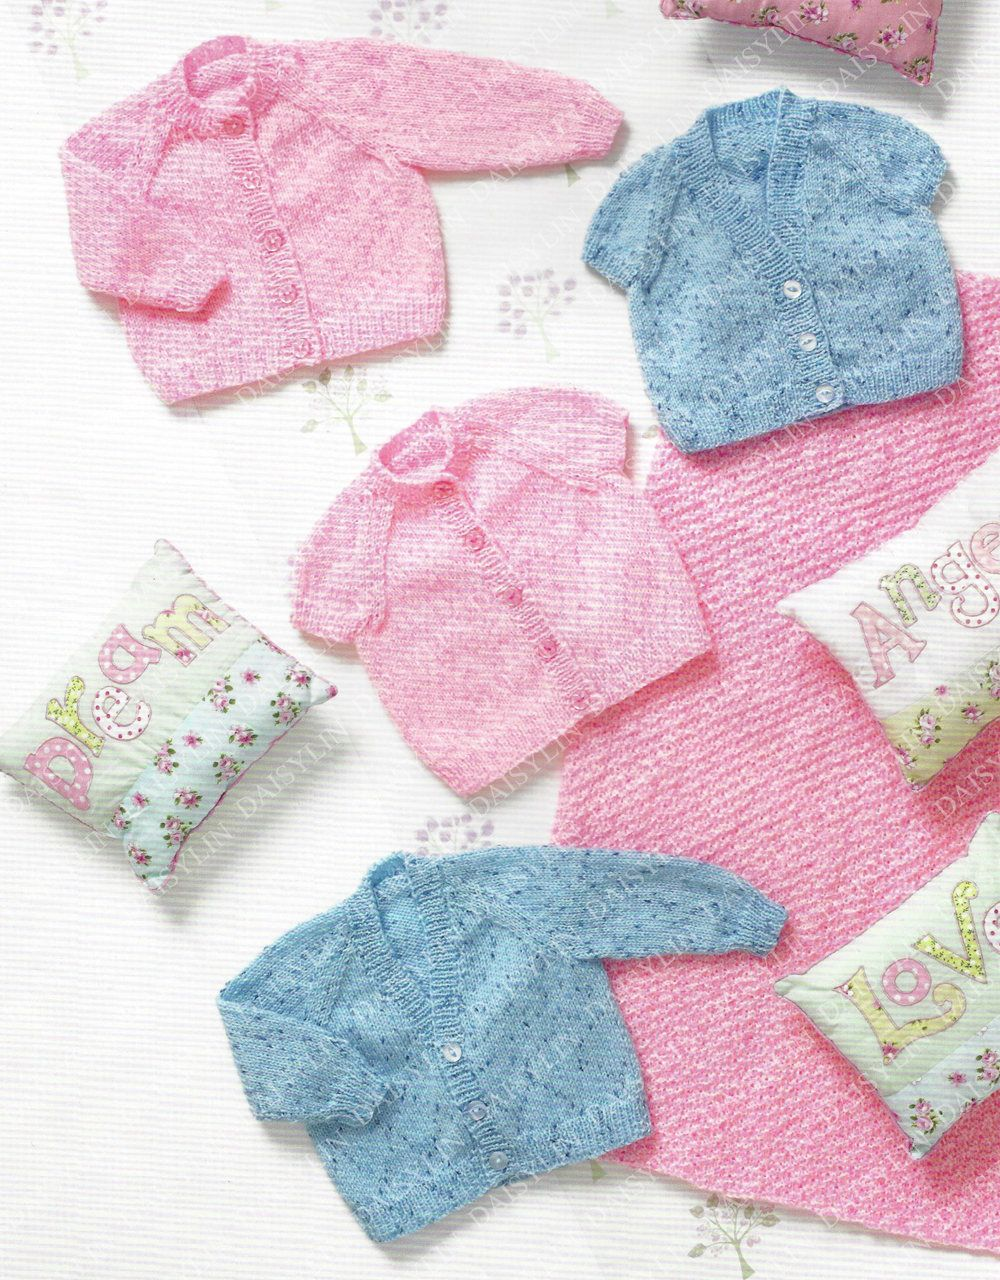 Instant pdf digital download premature baby doll cardigans instant pdf digital download premature baby doll cardigans blanket double knit knitting pattern 12 to bankloansurffo Image collections